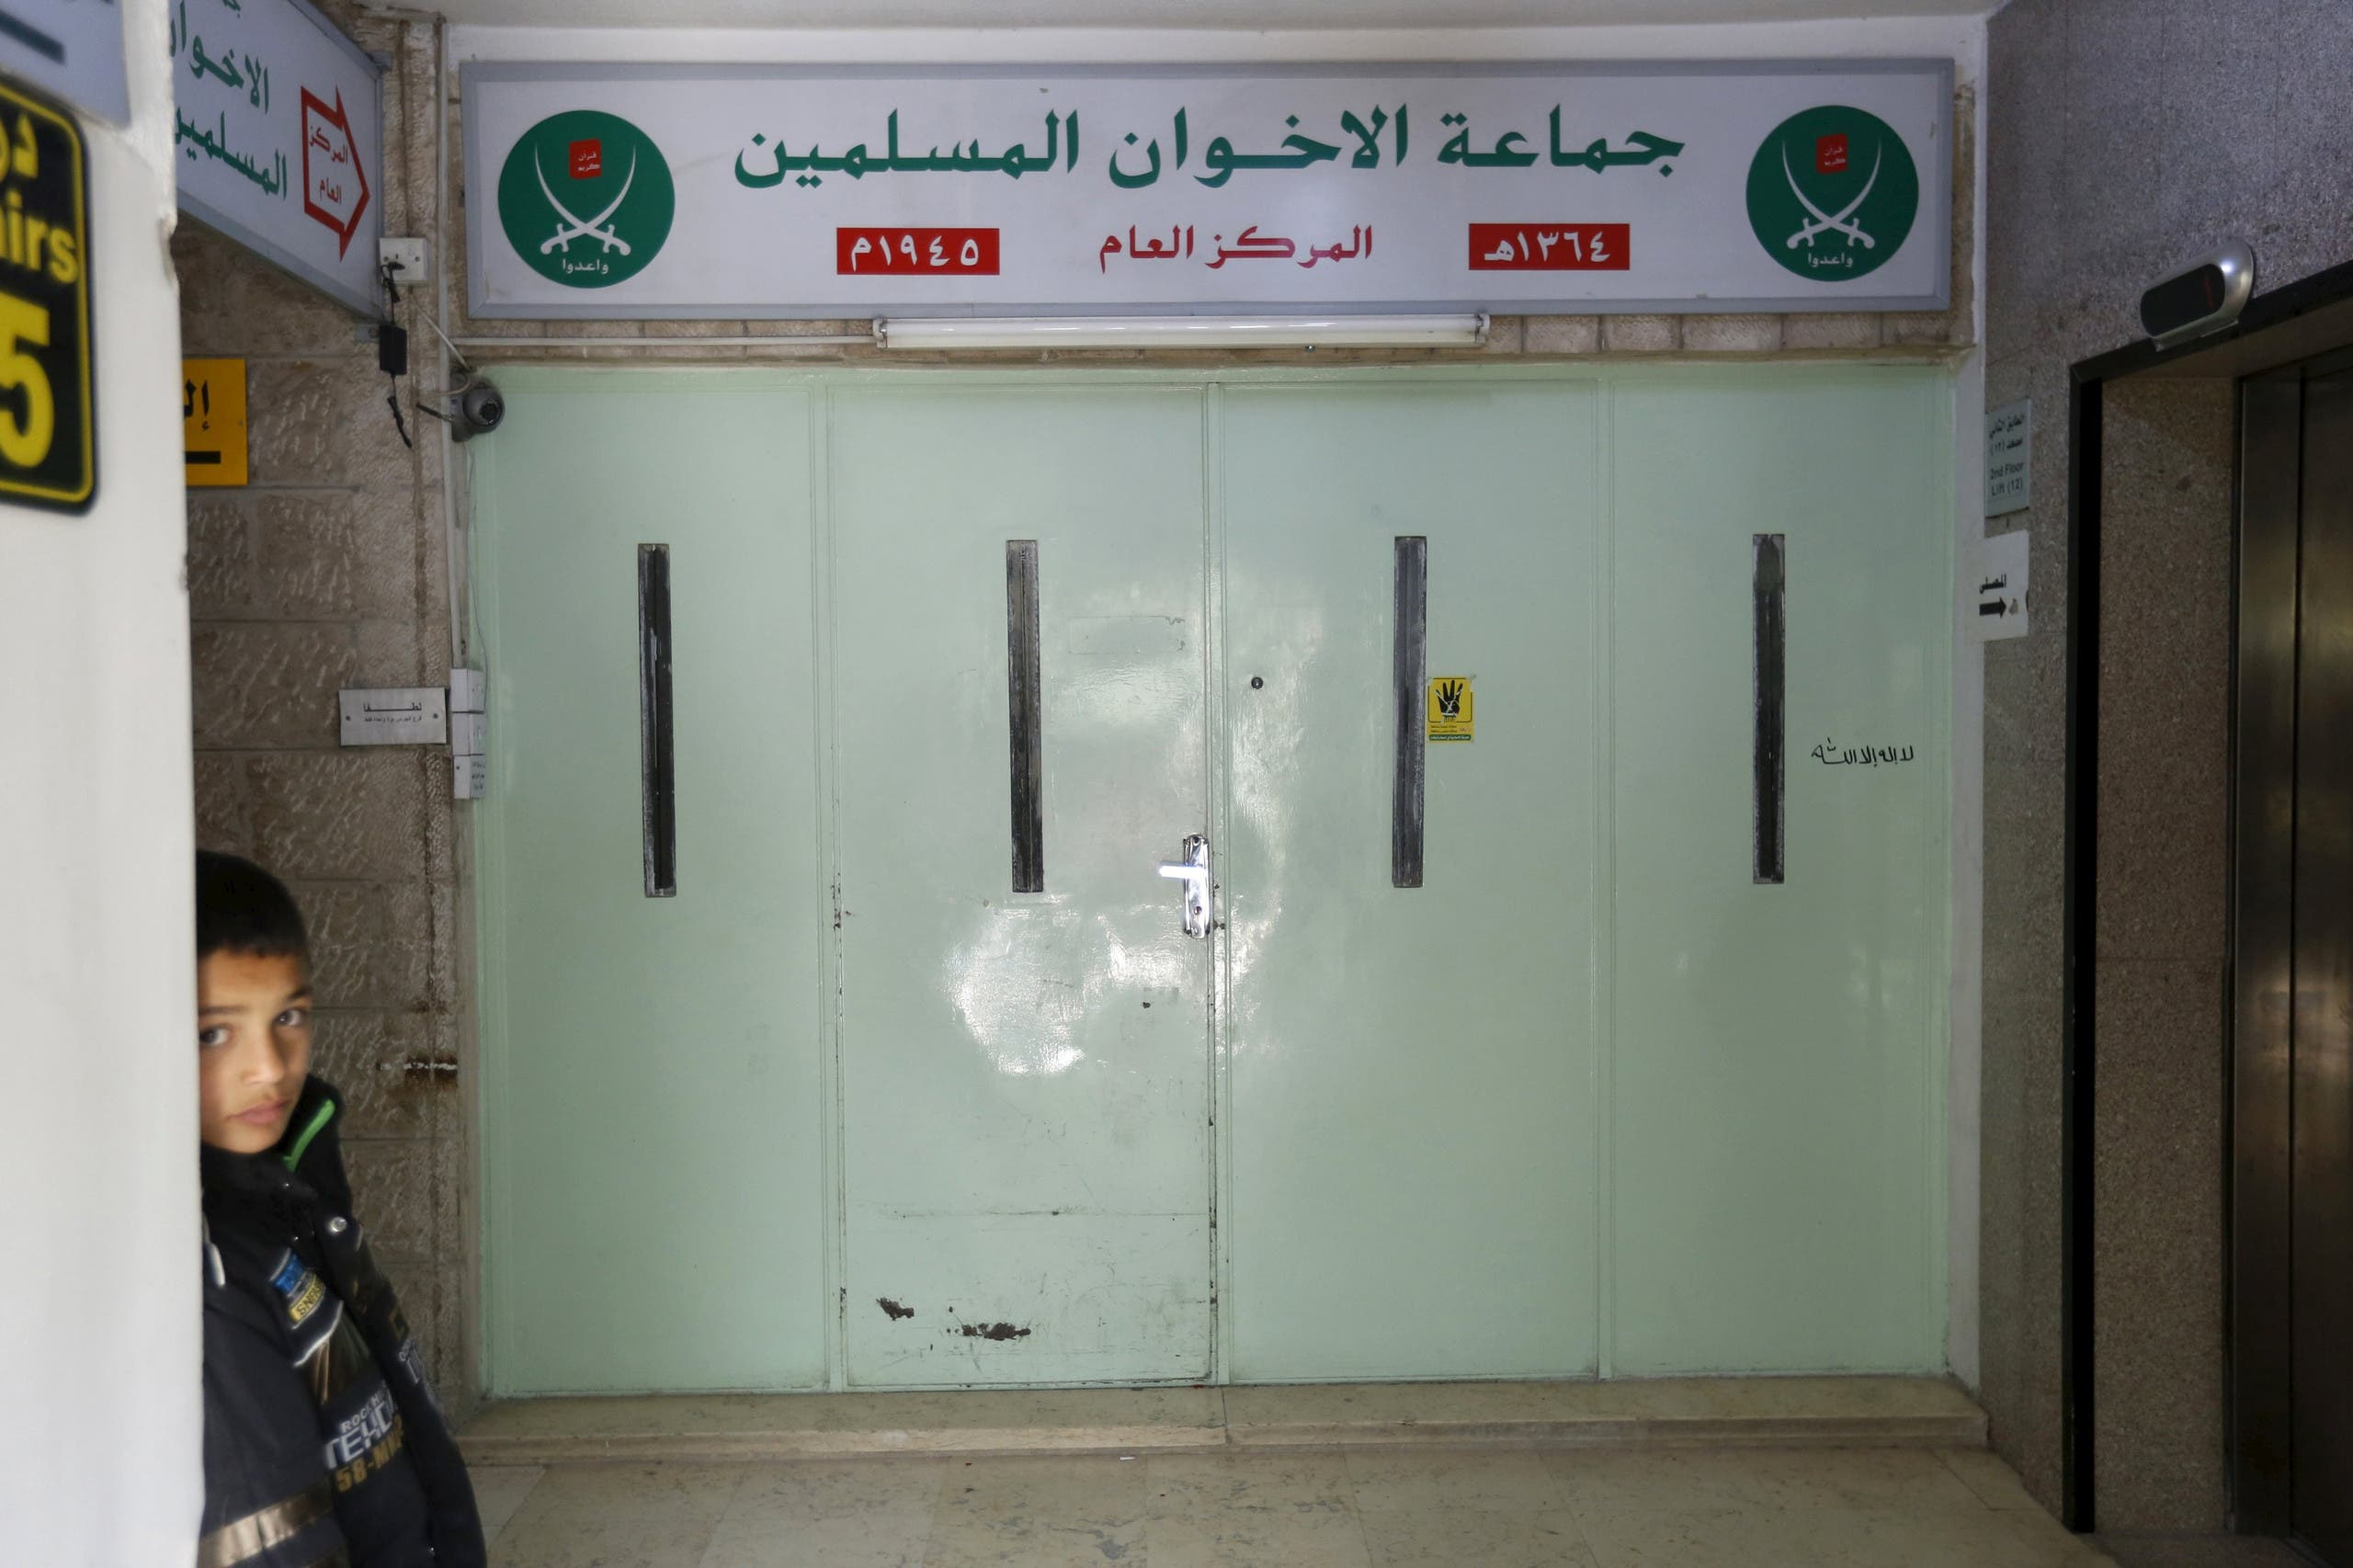 A boy who stands near the main entrance of the Muslim Brotherhood's office in Amman, after it was shut by police acting on orders of the Amman governor April 13, 2016. (Reuters)